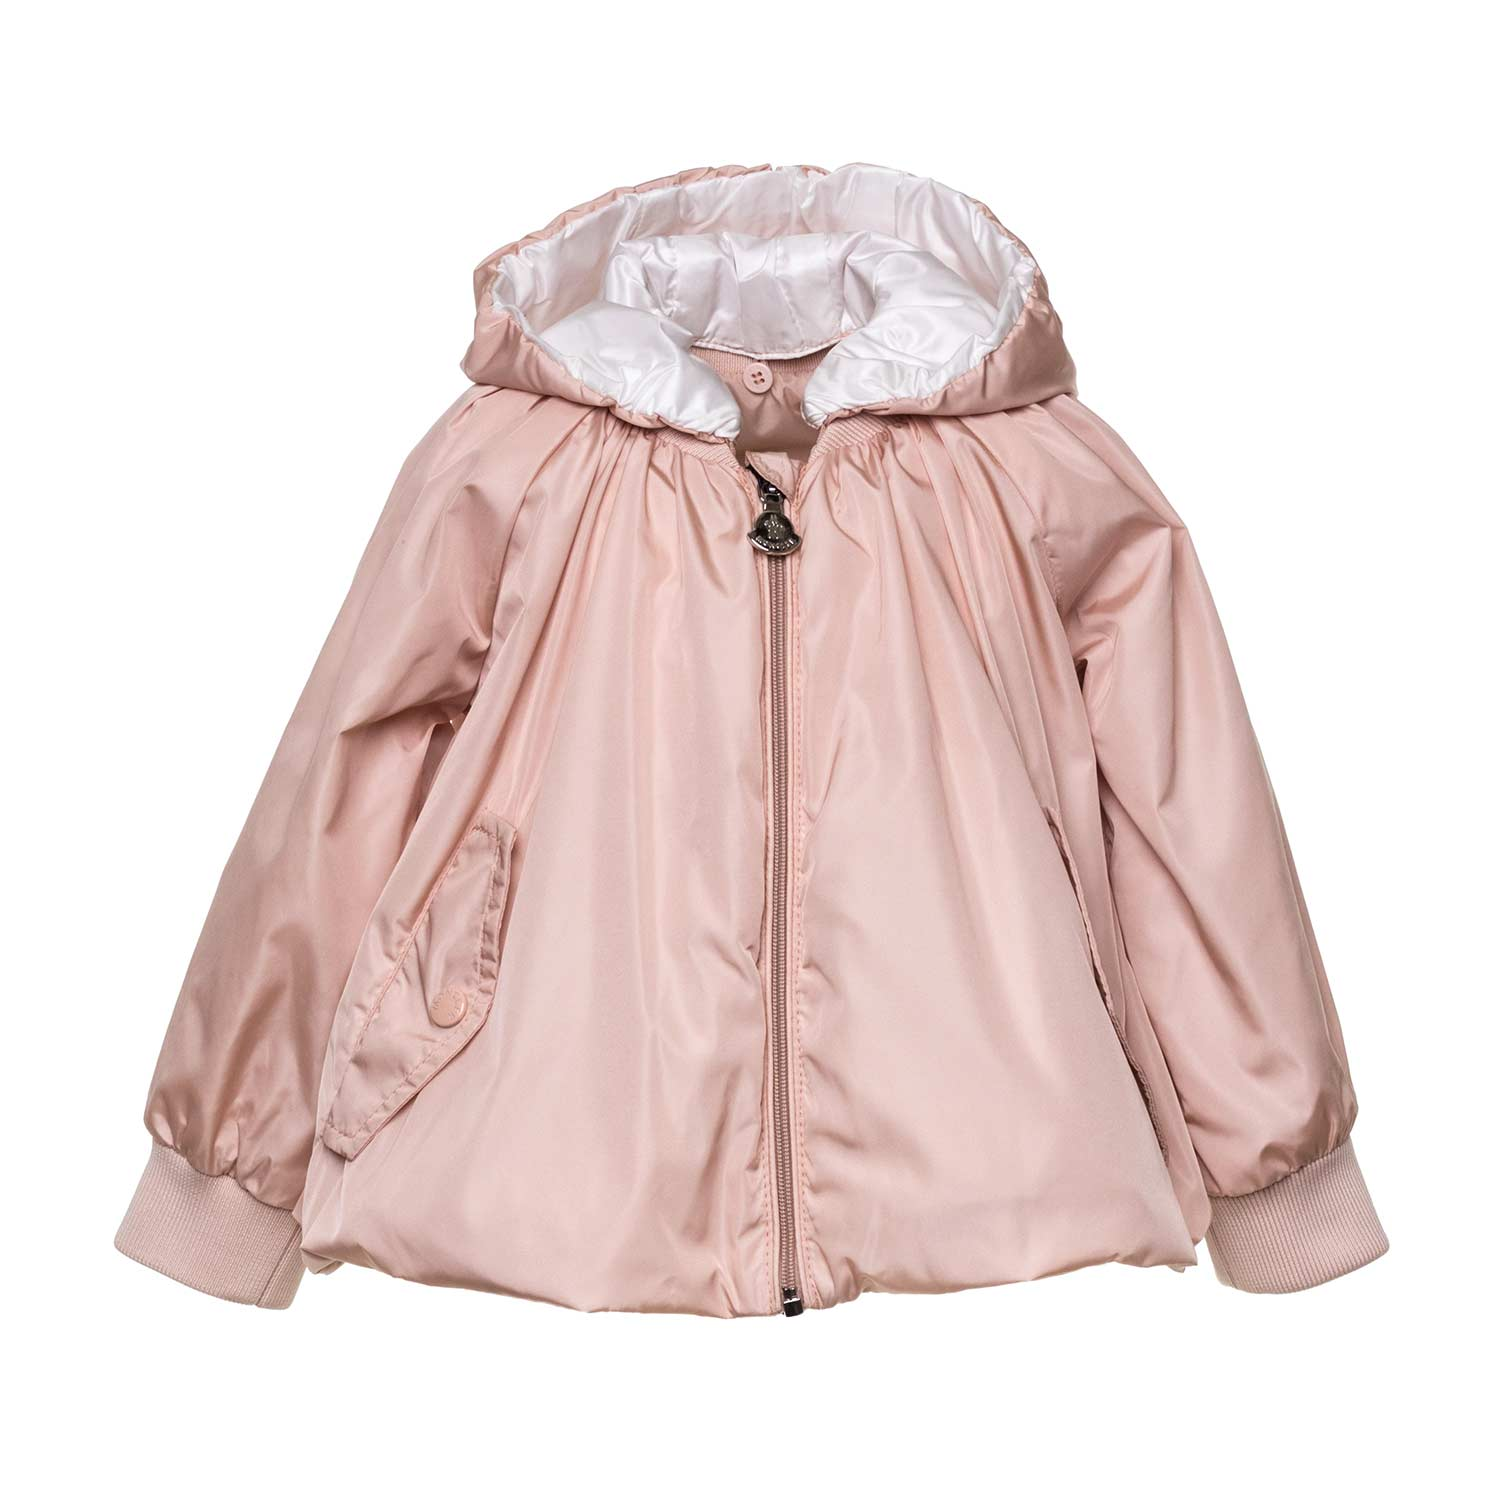 5669c44b0 Moncler - Pink Remire Jacket For Baby Girls - annameglio.com shop online